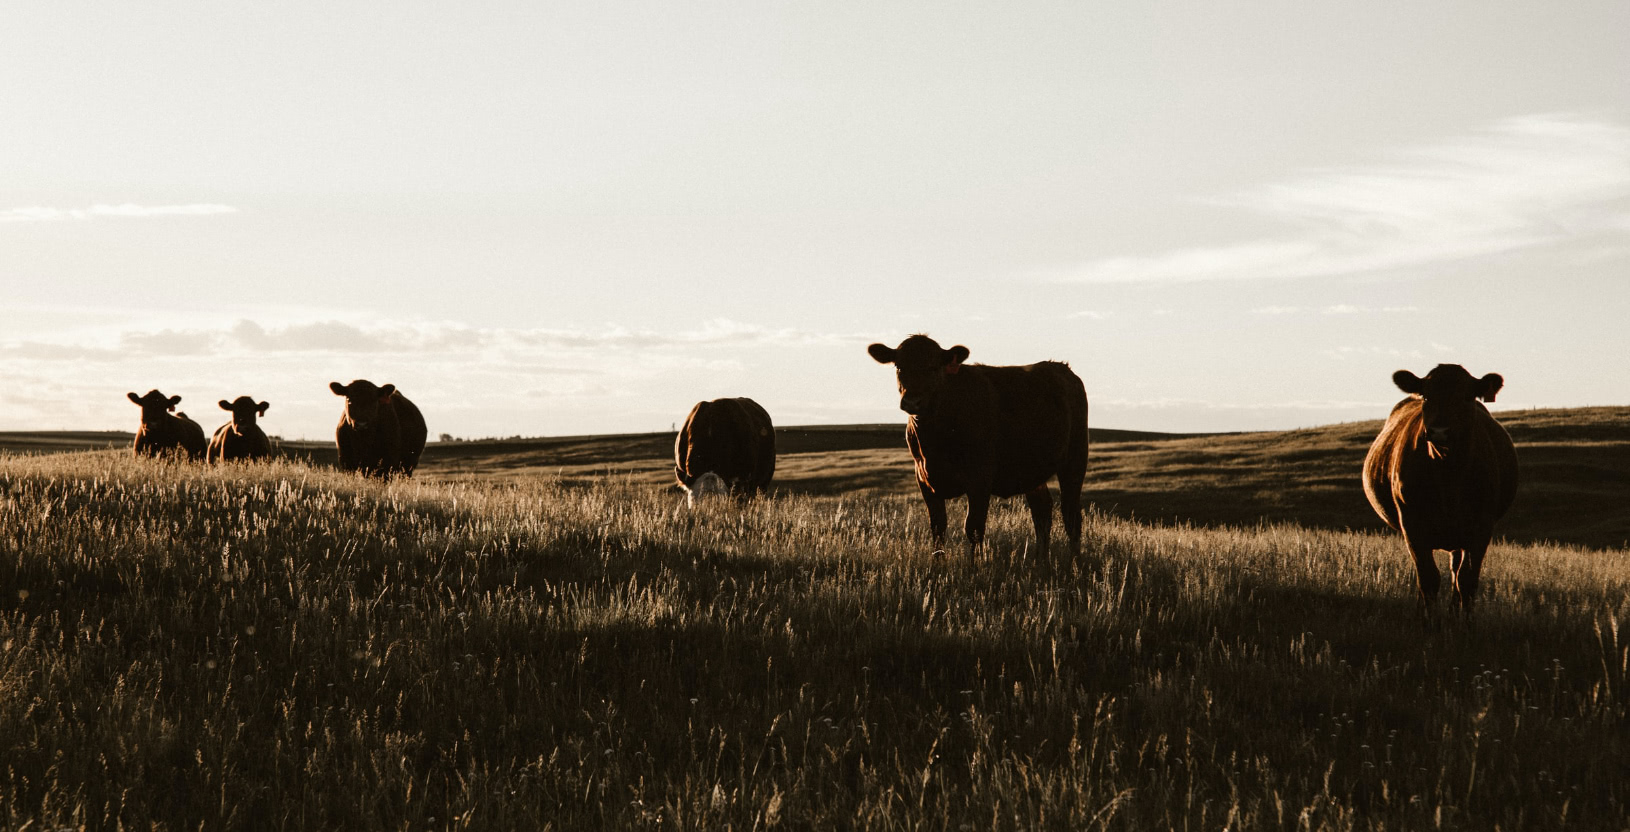 cows standing in a field, silhouetted against the sky